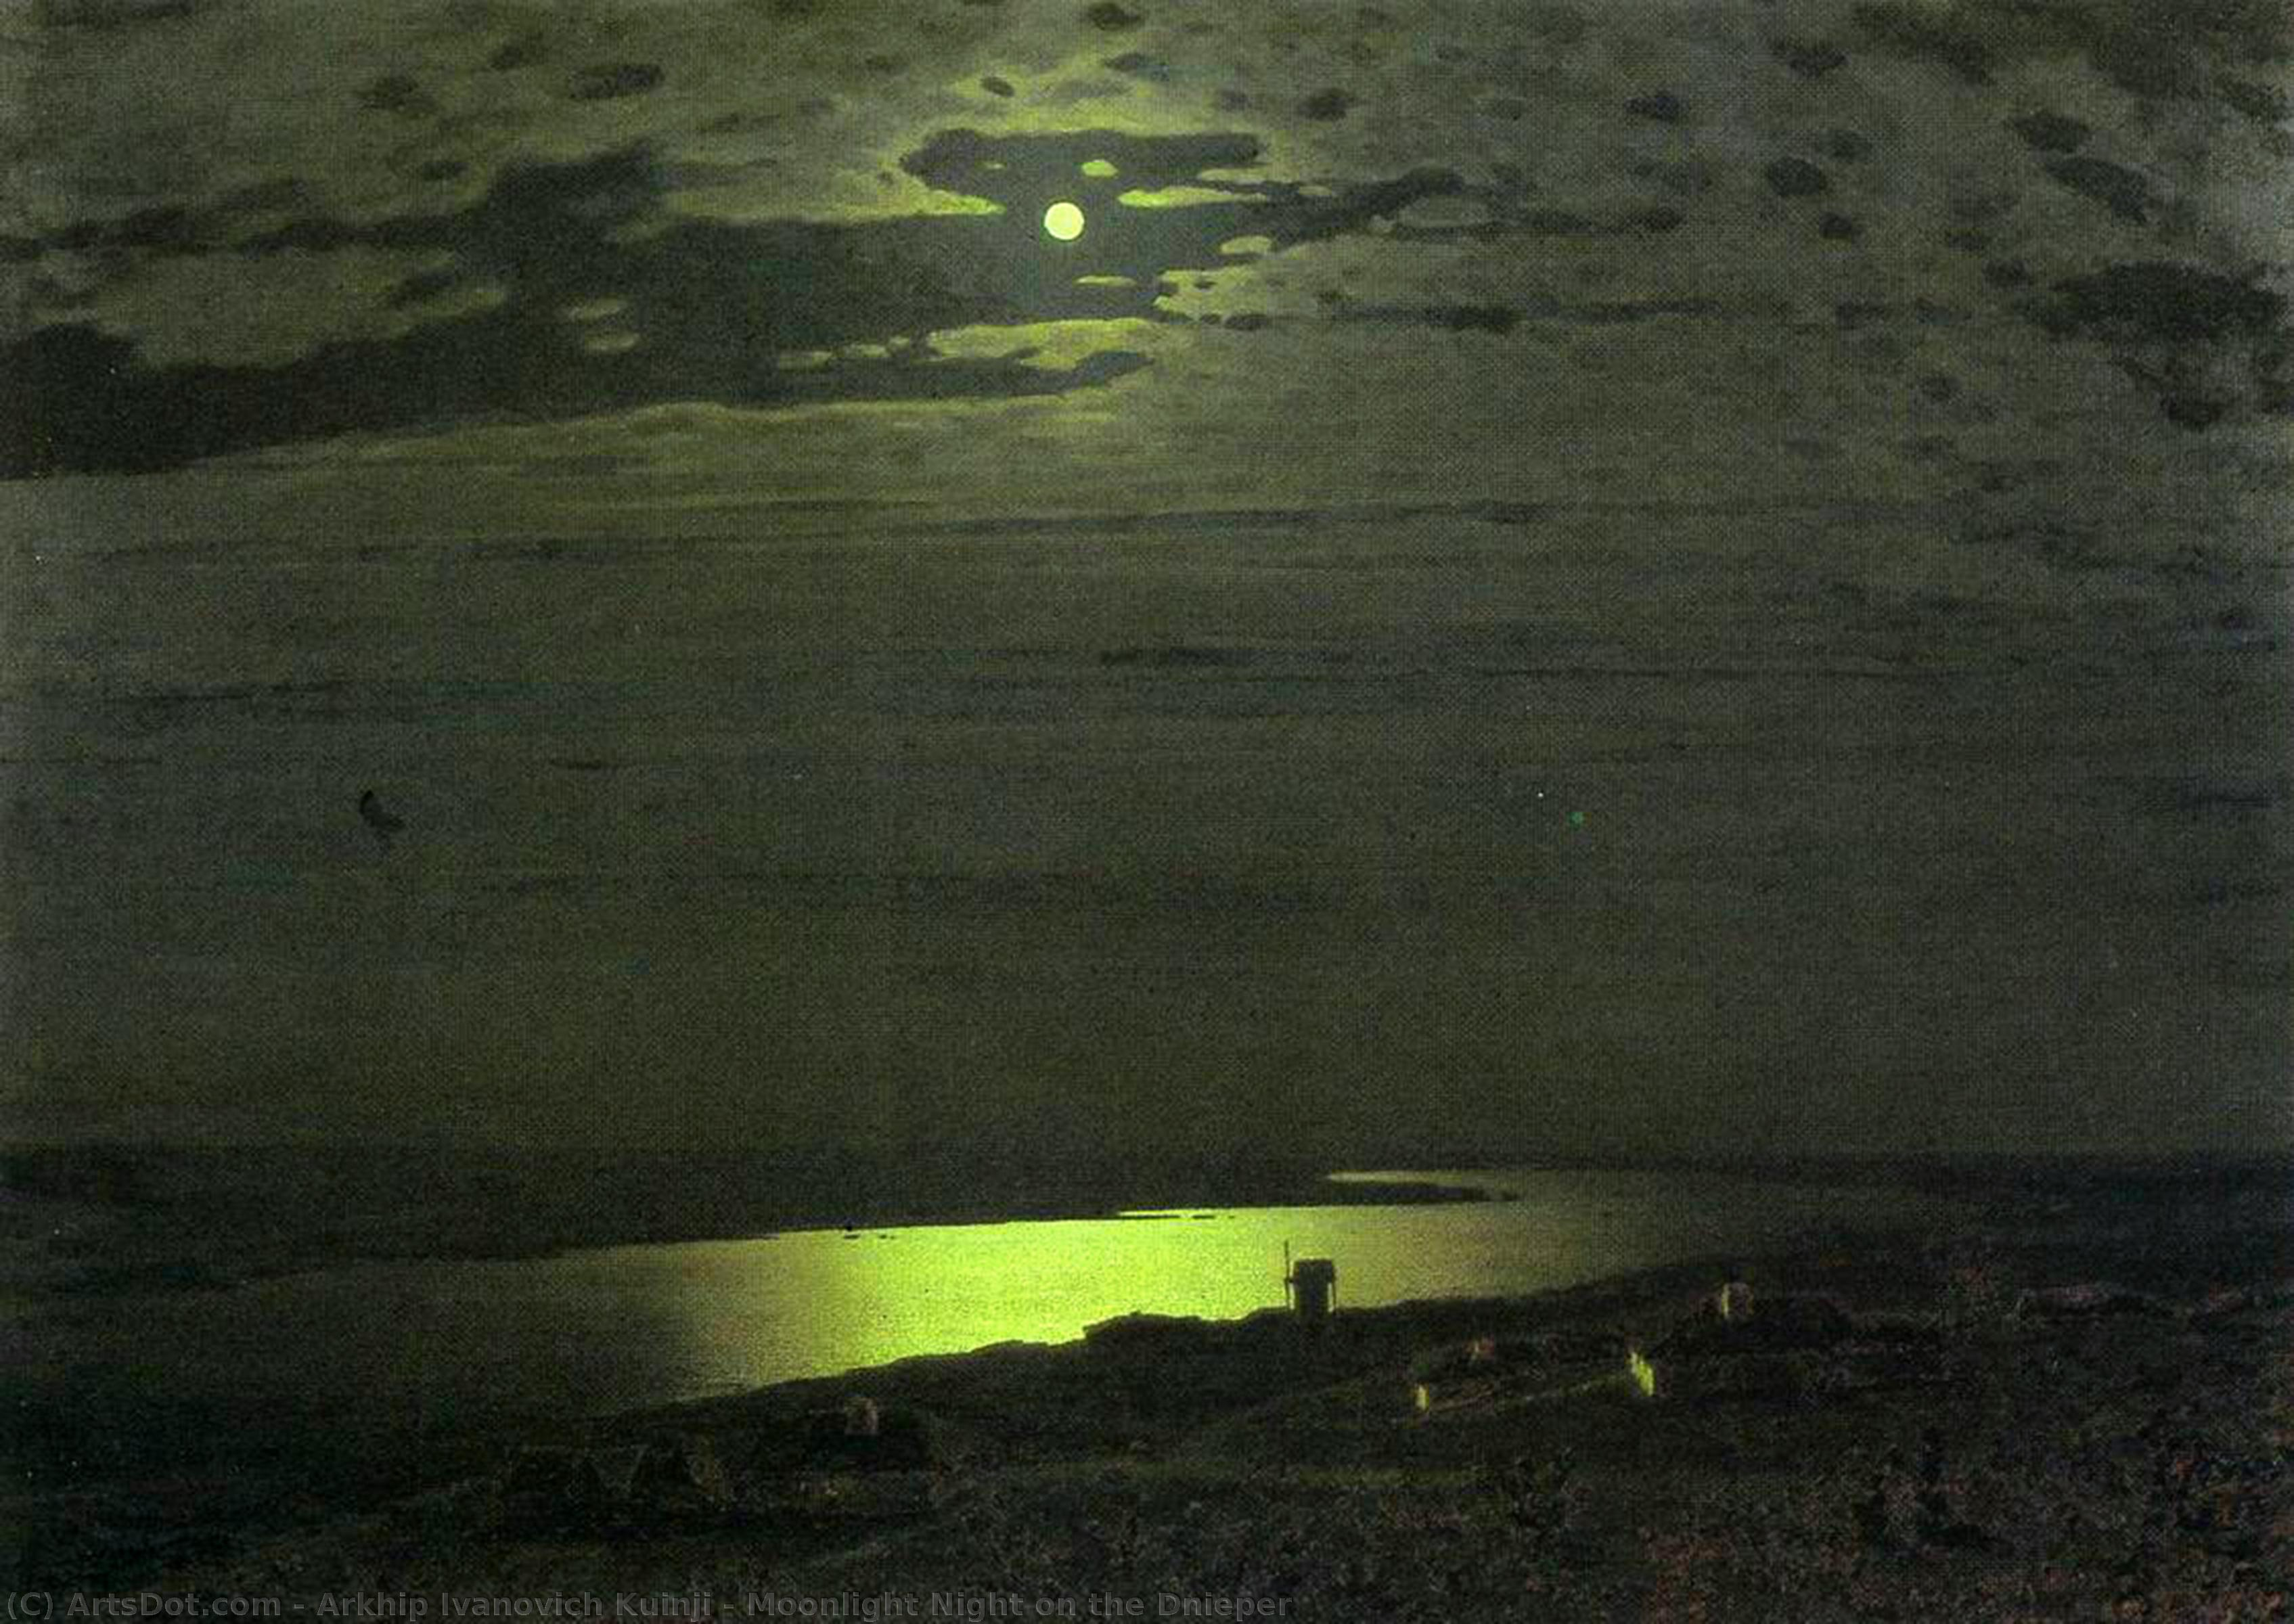 Moonlight Night on the Dnieper, 1880 by Arkhip Ivanovich Kuinji (1842-1910, Russia) | Paintings Reproductions Arkhip Ivanovich Kuinji | ArtsDot.com